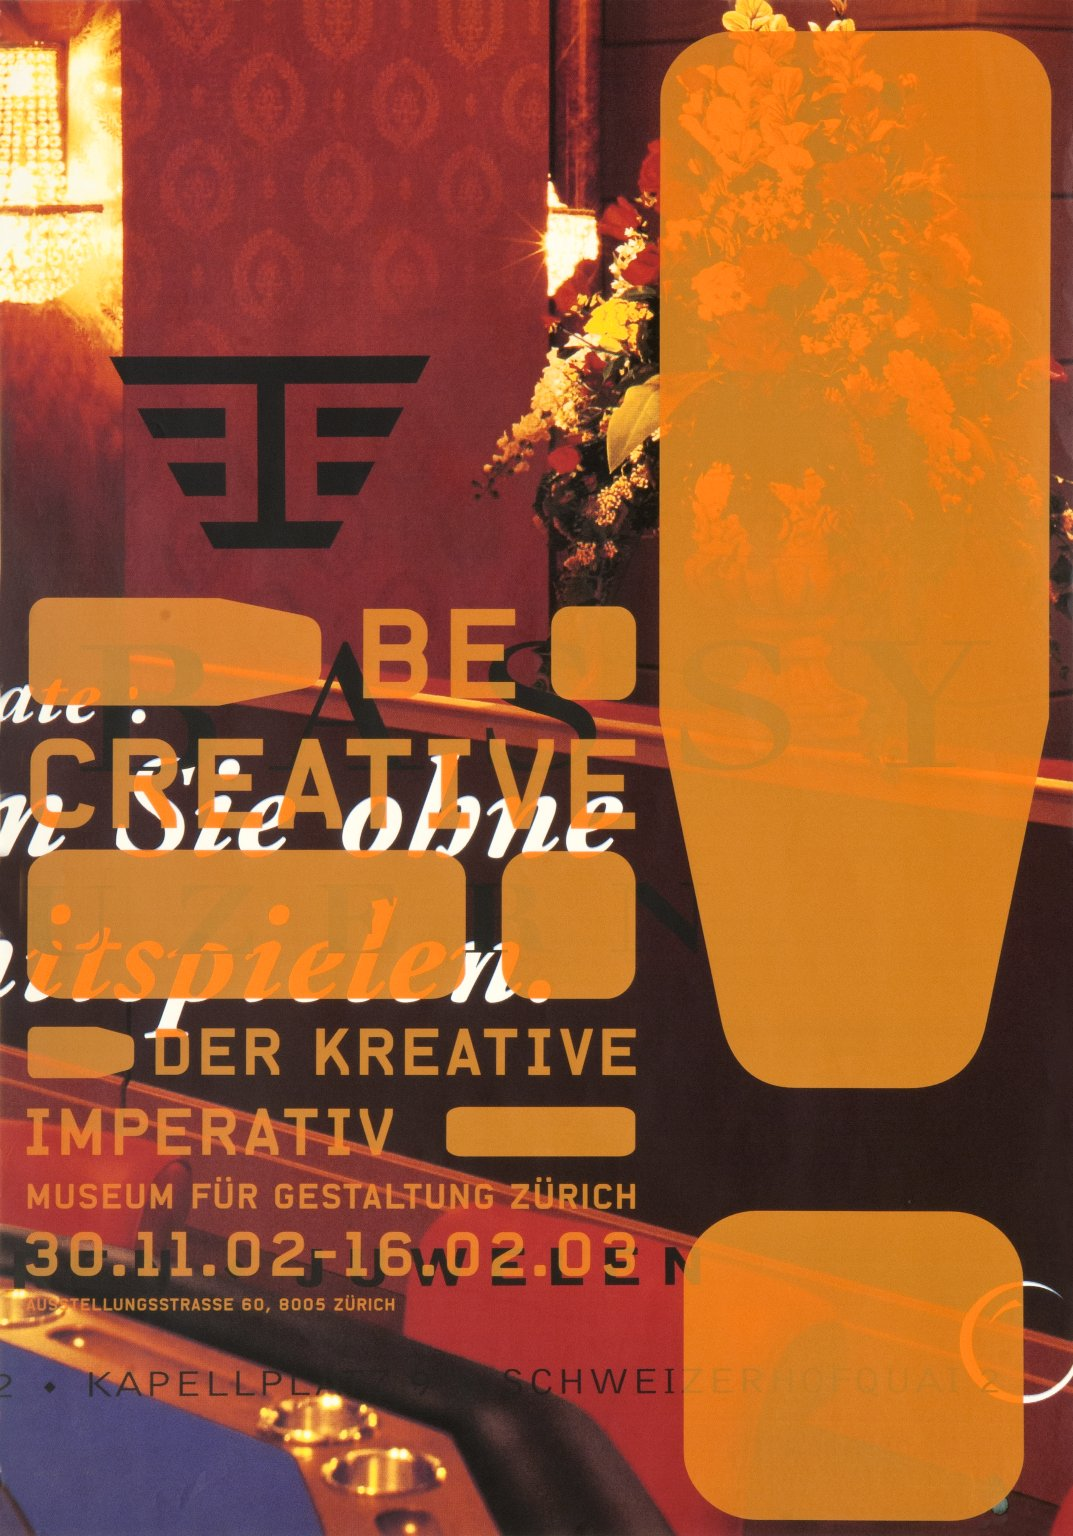 Be Creative: Der Kreative Imperativ